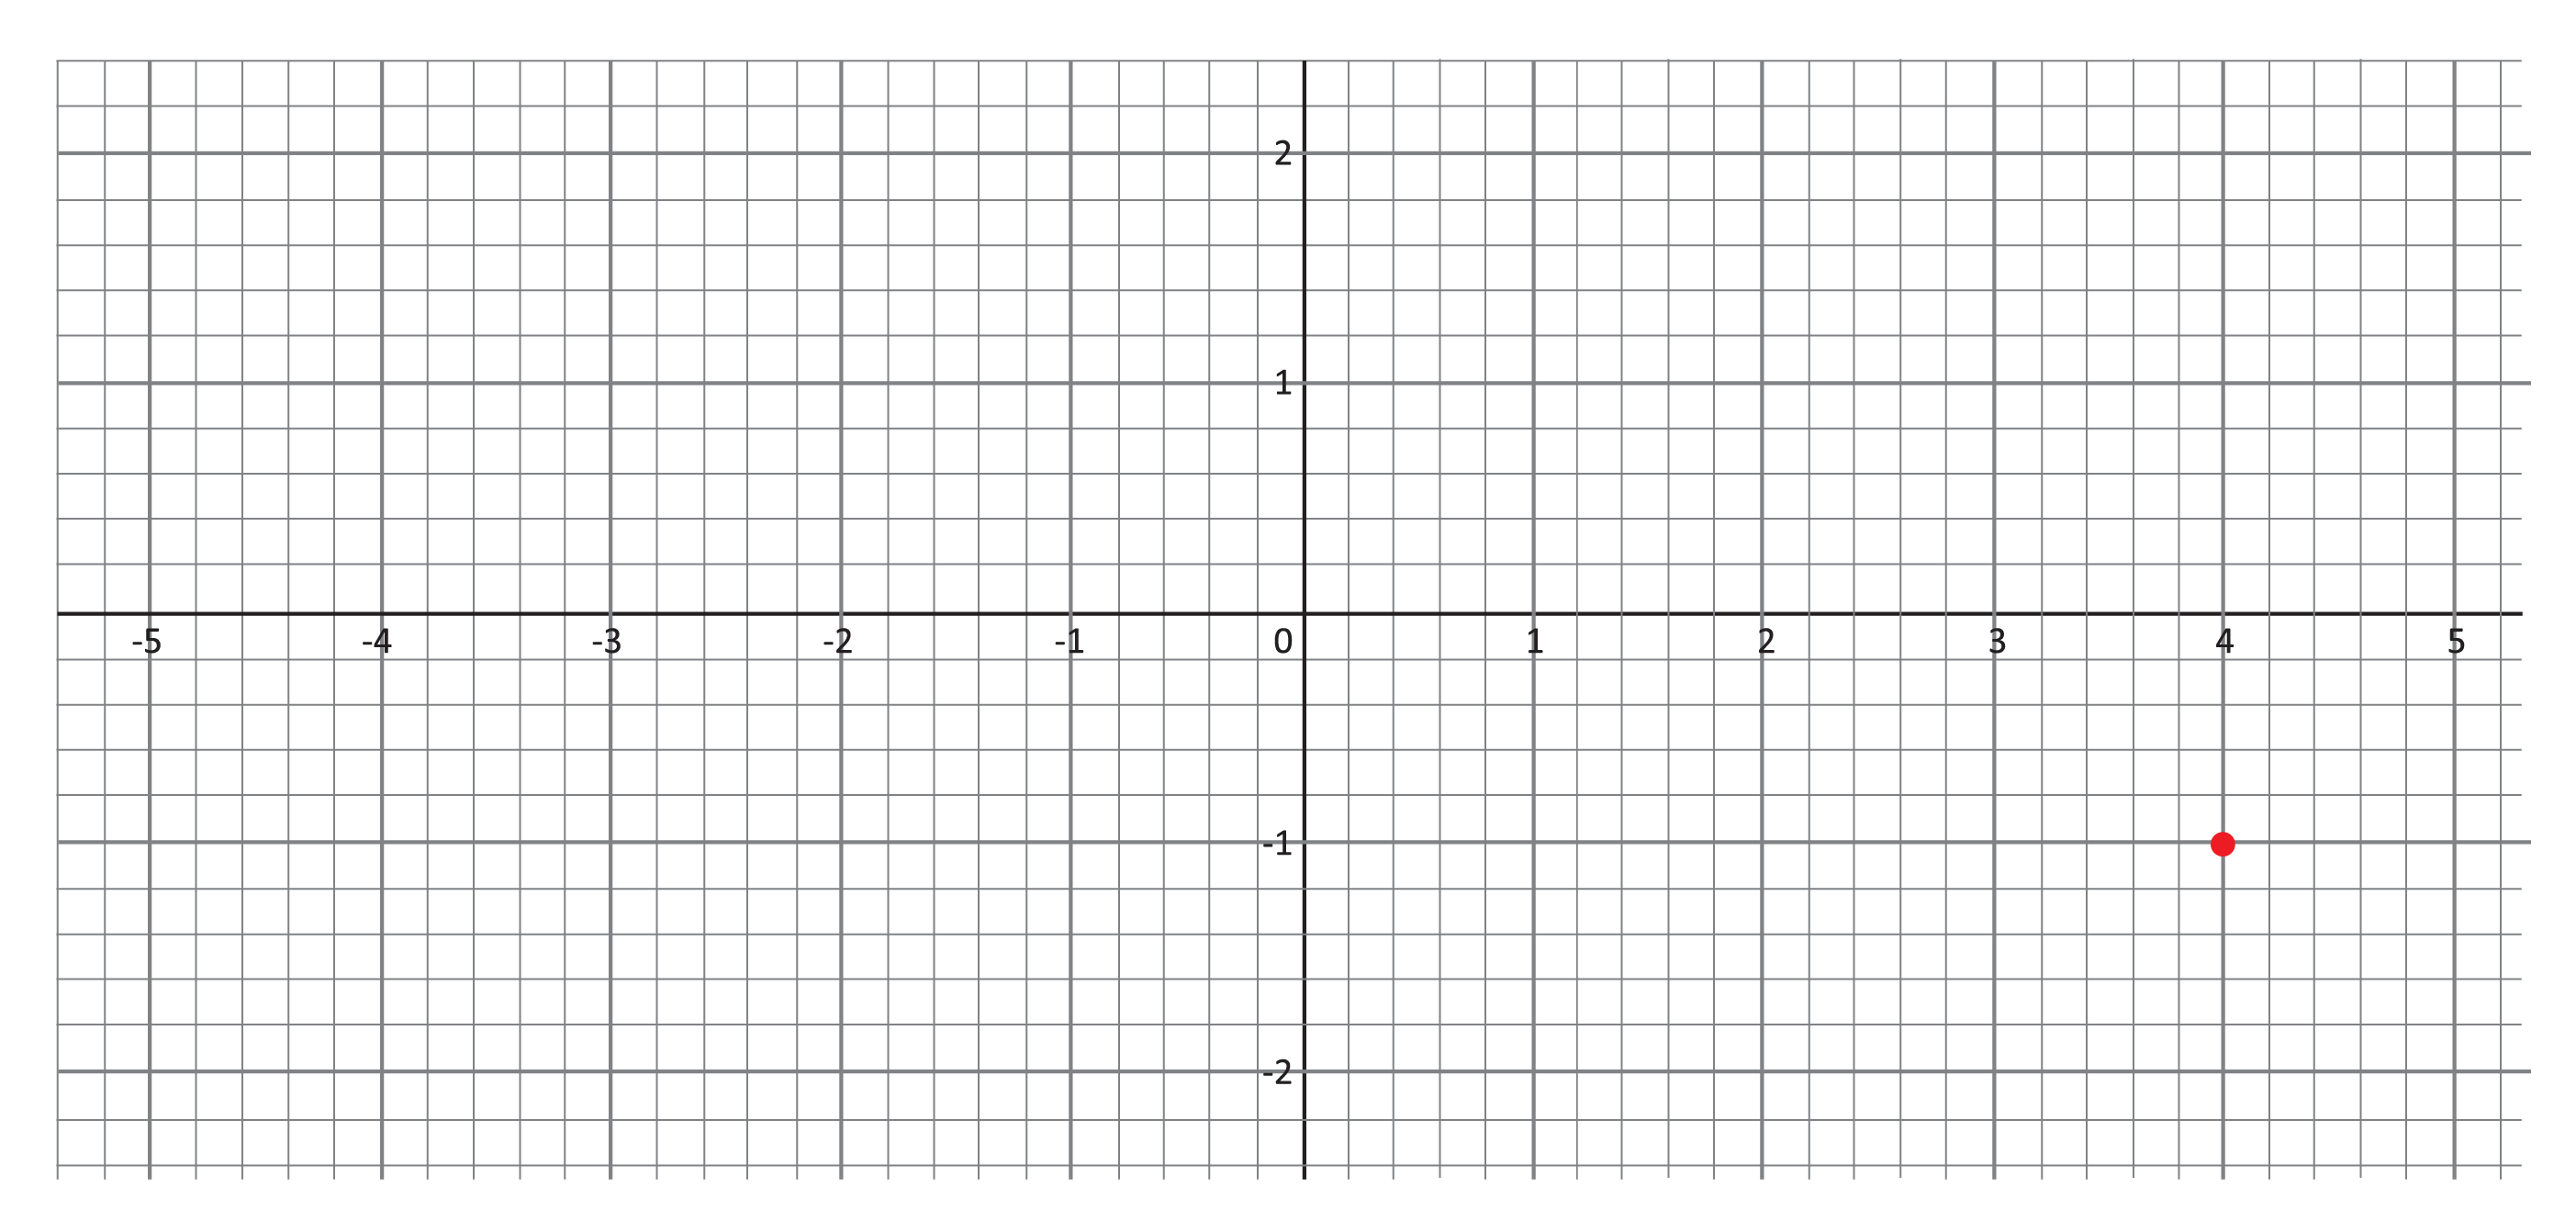 coordinate grid, red point at (4, negative 1)